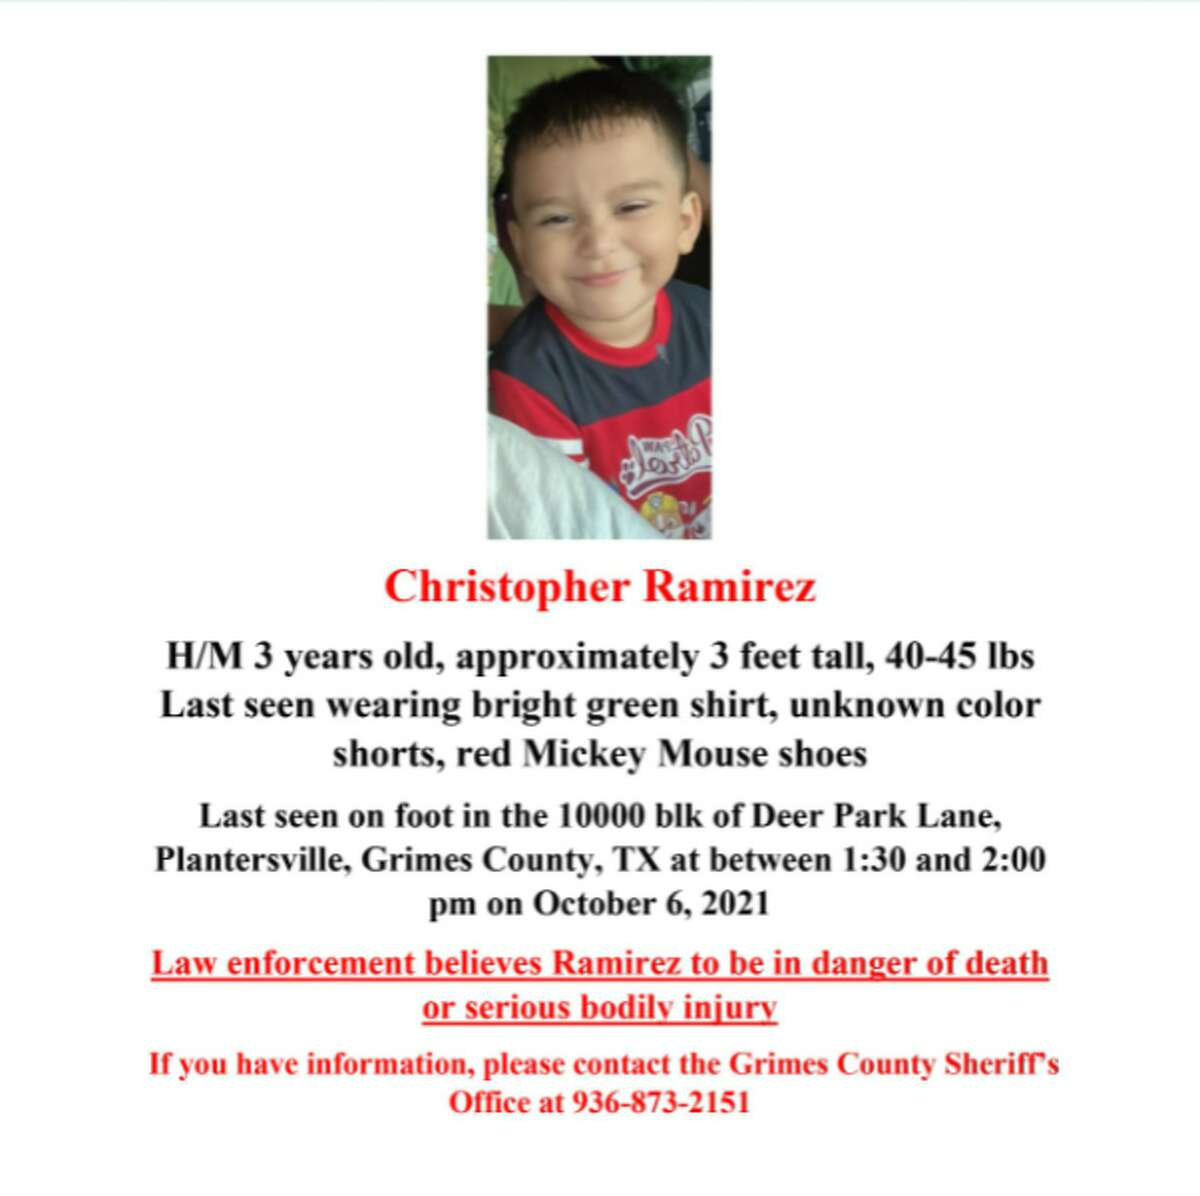 Search teams are still looking for 3-year-old Christopher Ramirez who went missing in Grimes County on Wednesday, according to a Grimes County Sheriff's press conference on Oct. 7, 2021.